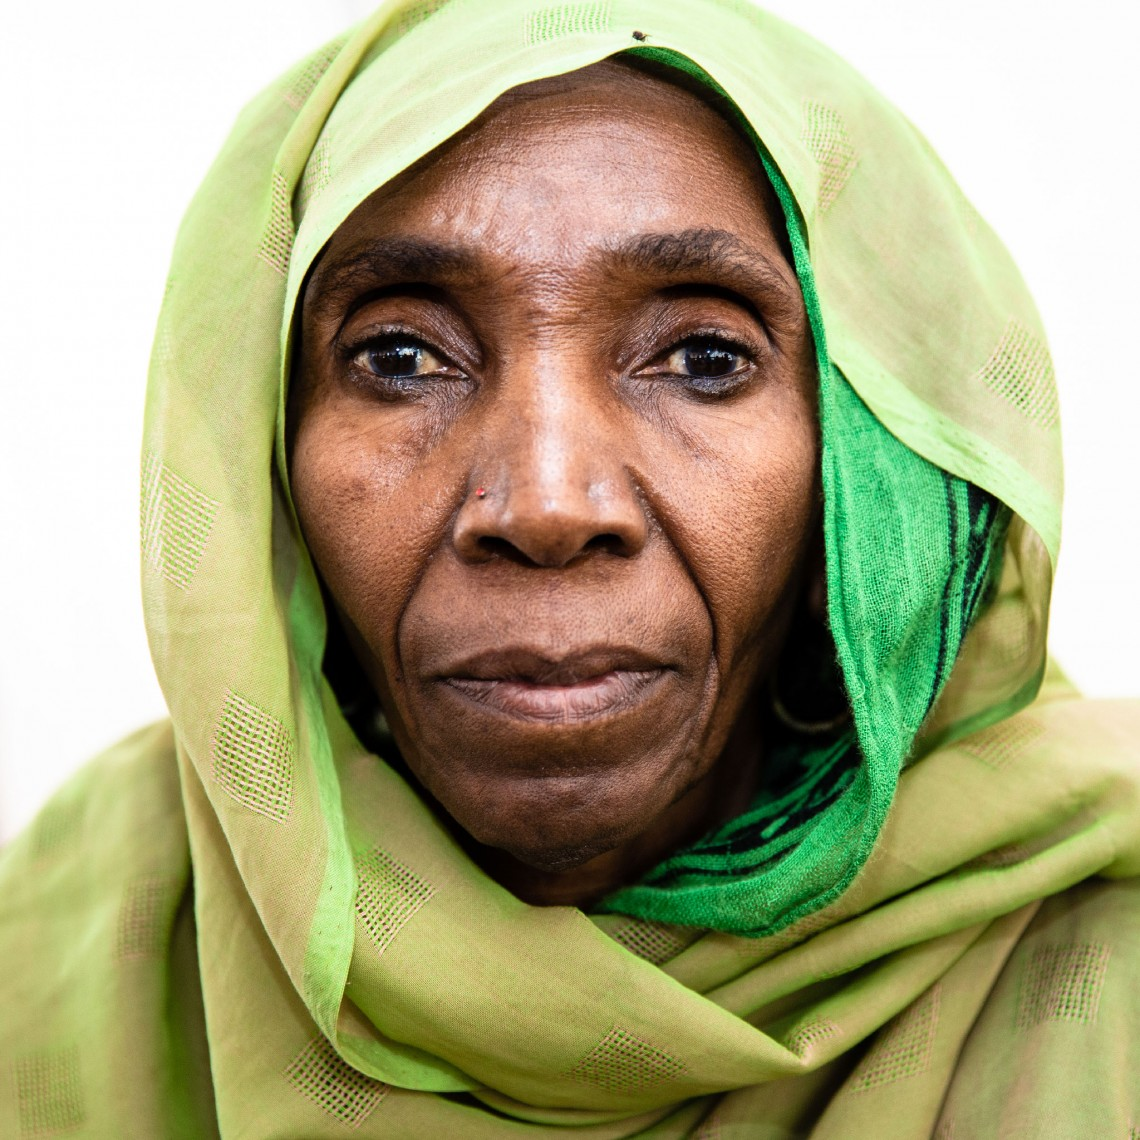 Famata Hassan. A tradition birth attendant in Maiduguri. Photo: Alyona Synenko/ICRC